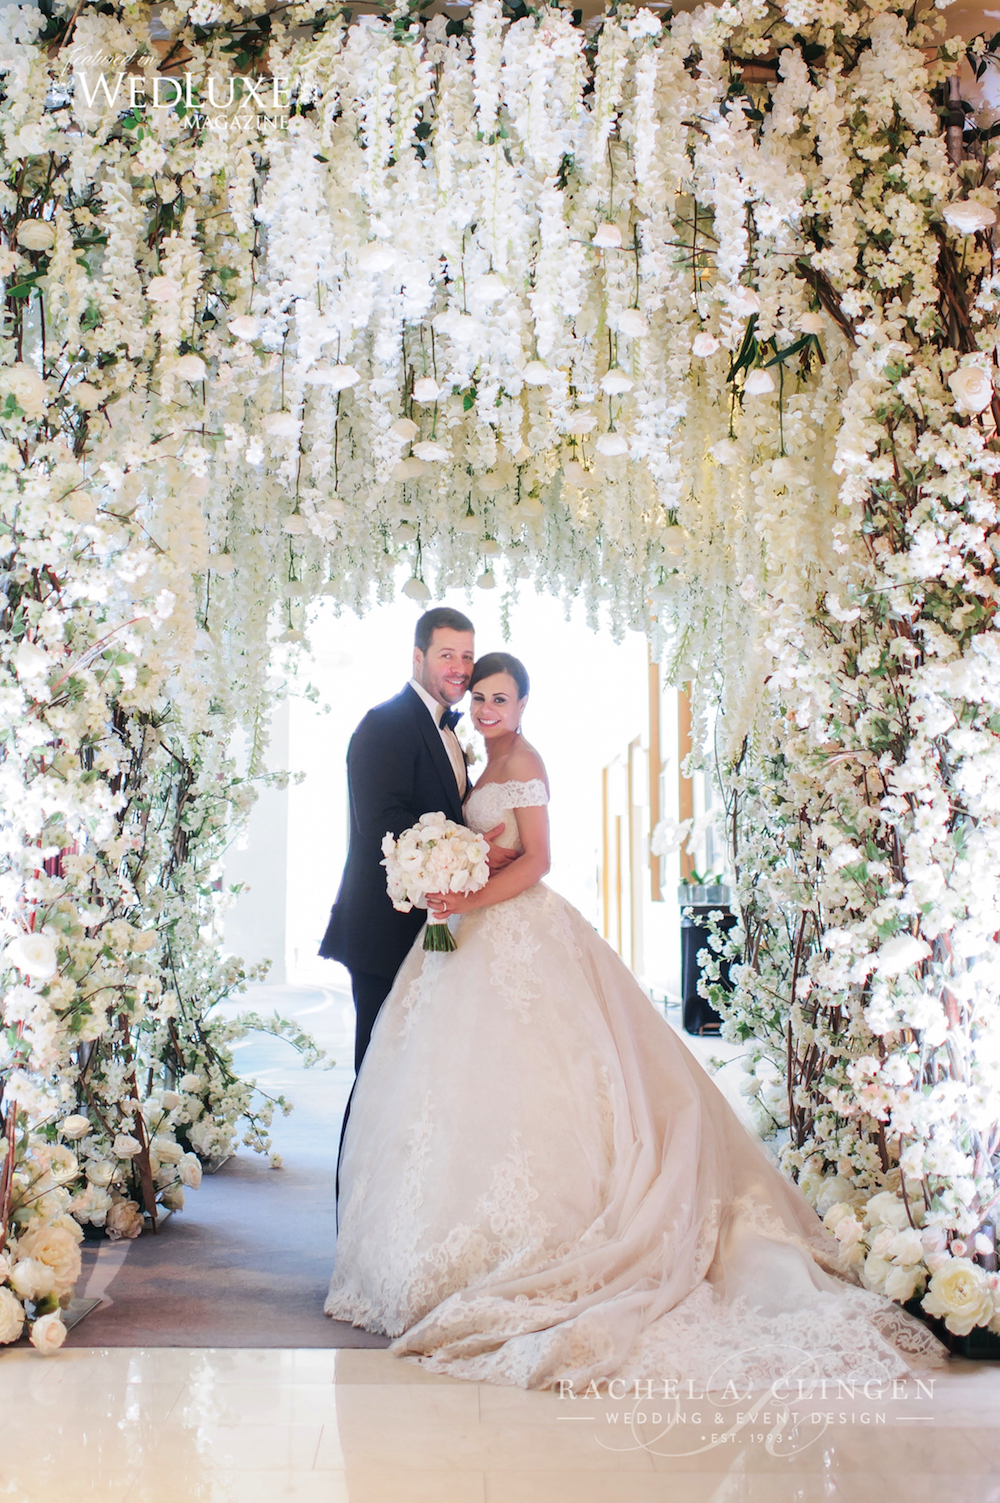 This gorgeous rose and wisteria canopy was designed by Rachel A. Clingen of Toronto. The wedding took place at the Ritz Carlton.